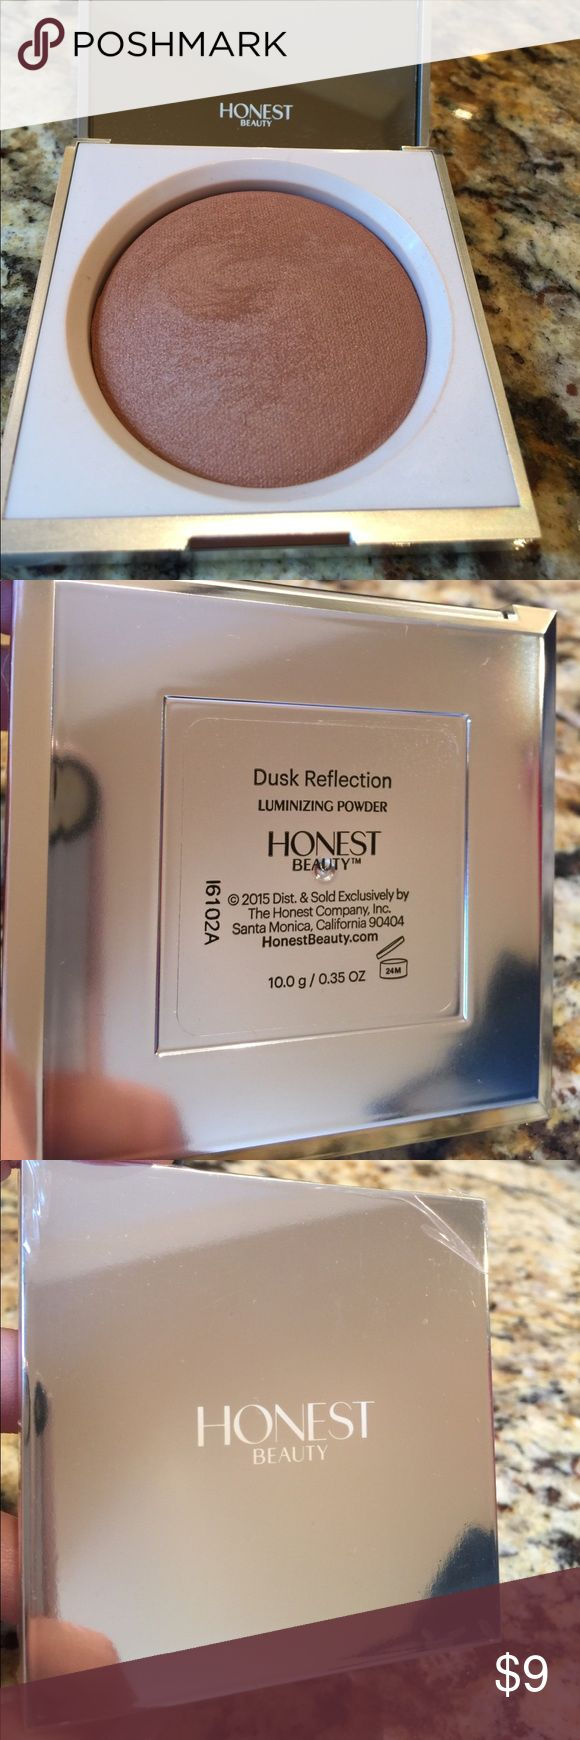 Honest beauty dusk reflection luminizing powder Used once. Lightweight luminizing powder in dusk reflection by Honest beauty. Still has the plastic protection on the top of the case. The Honest Company Makeup Luminizer